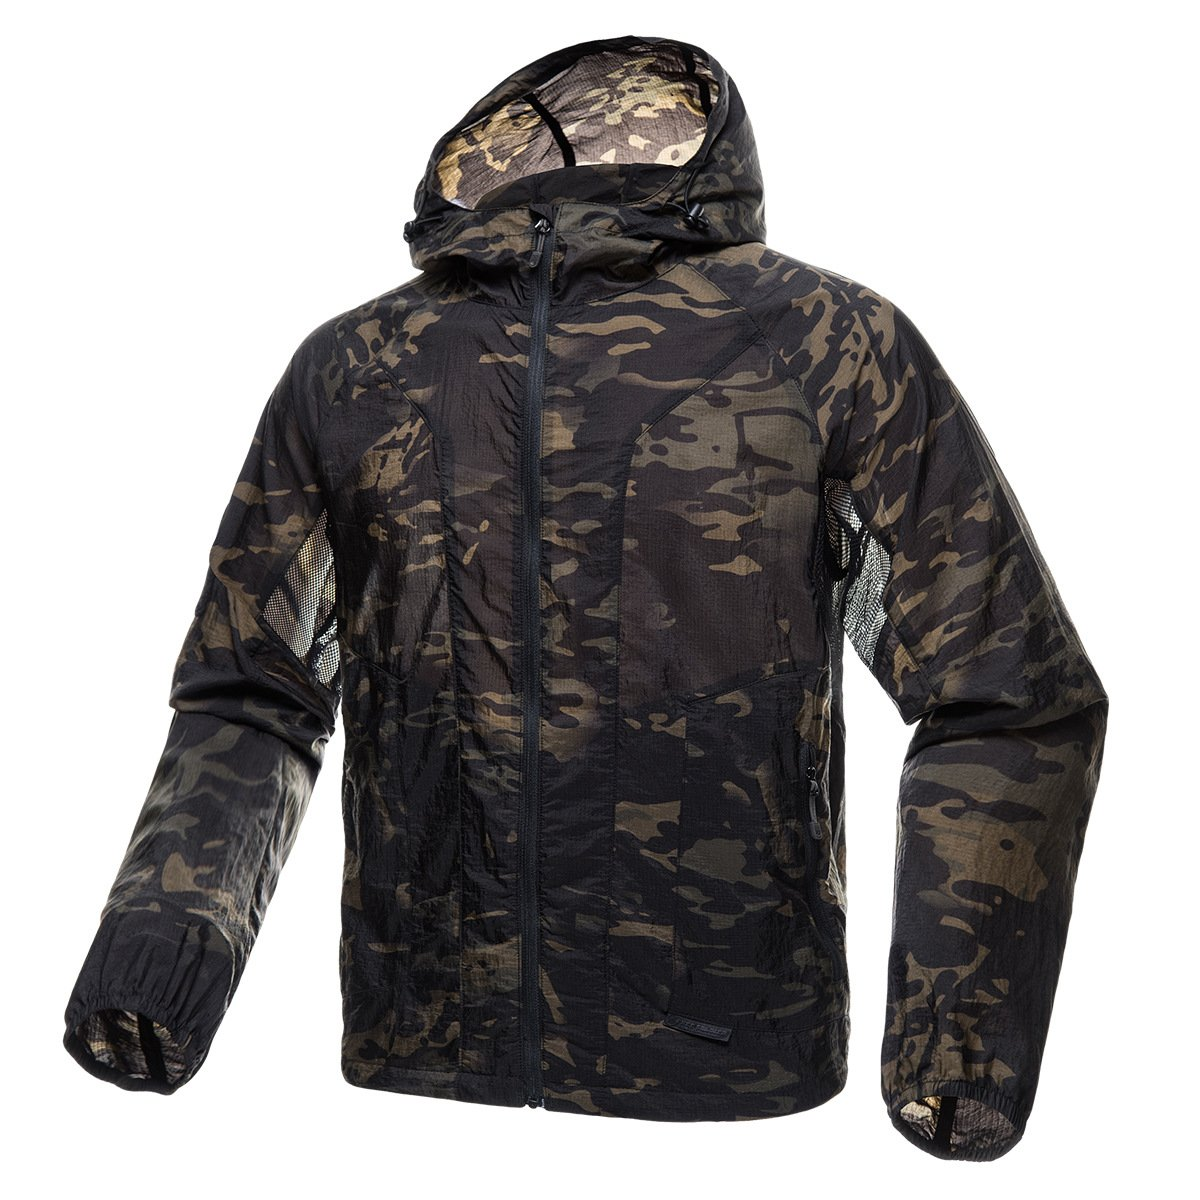 FREE SOLDIER Men's Tactical Jacket Lightweight Wind Breaker Jacket Water-Resistant Breathable Hiking Cycling Jacket (Dark Camo, S) by FREE SOLDIER